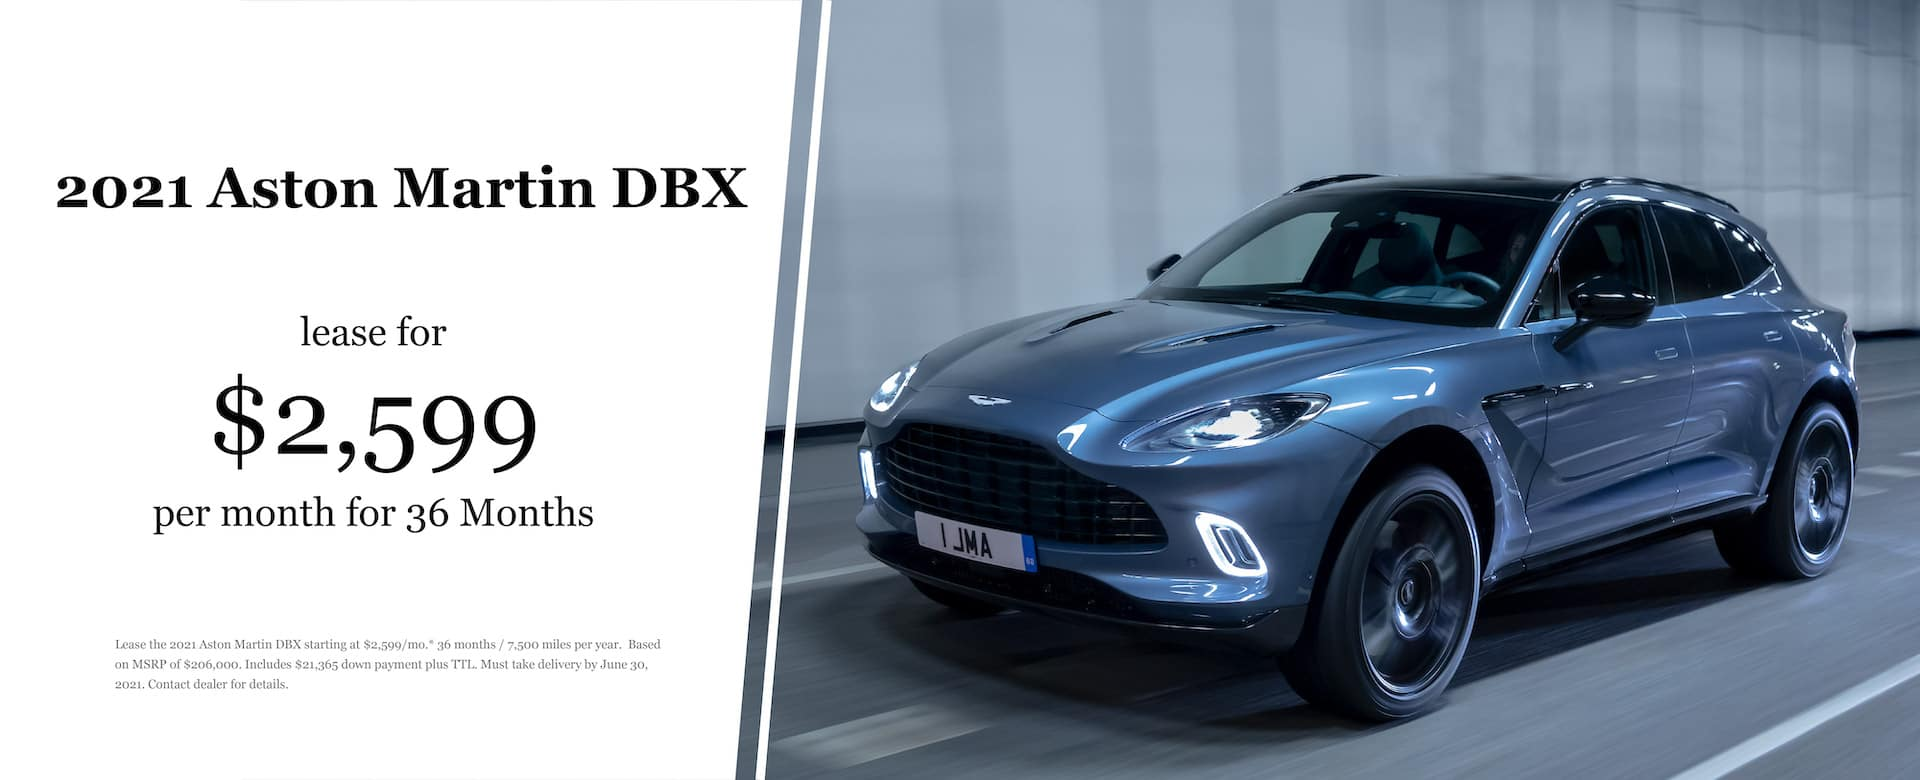 AstonMartin_Lease_Ads-DBX